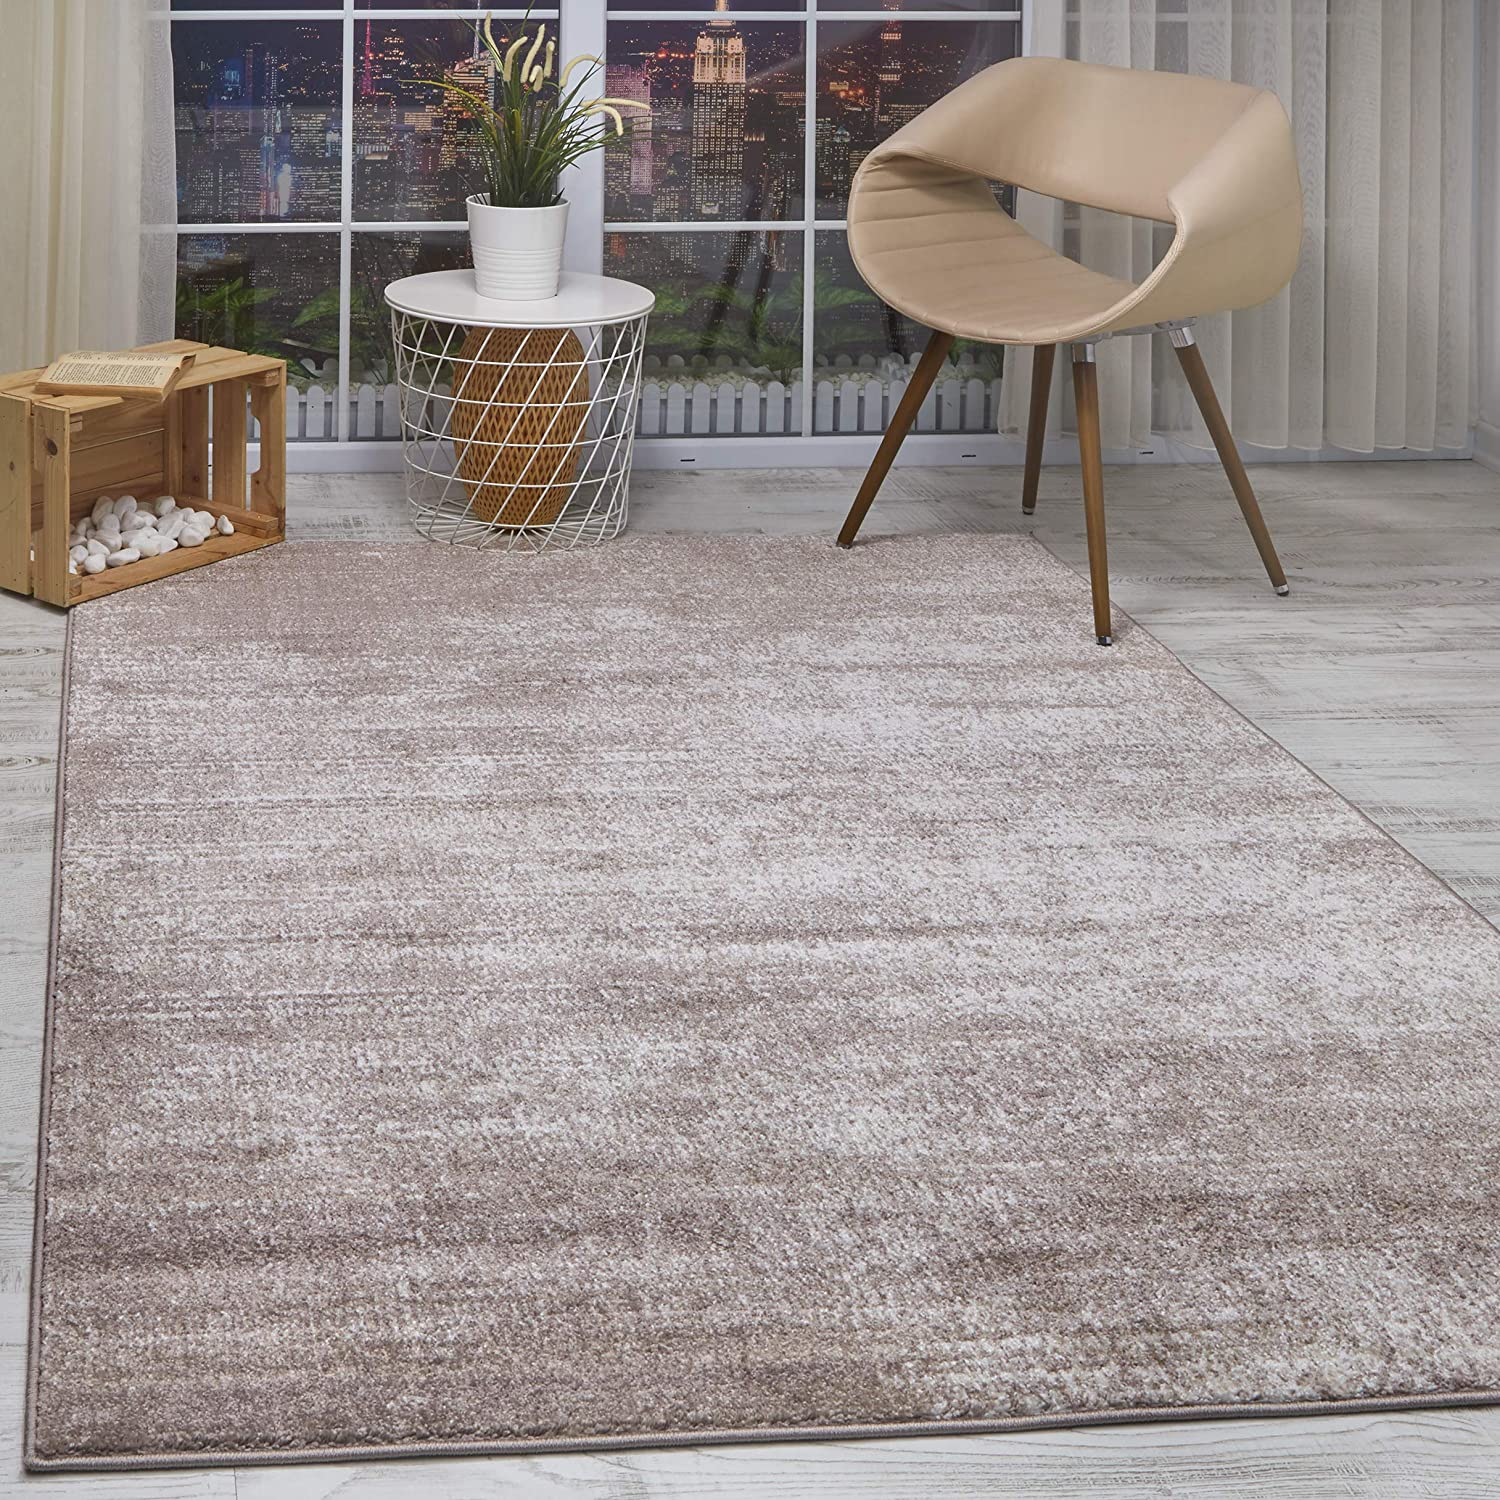 Antep Rugs Florida Collection Distressed Polypro Abstract Manufacturer Brand new OFFicial shop Modern